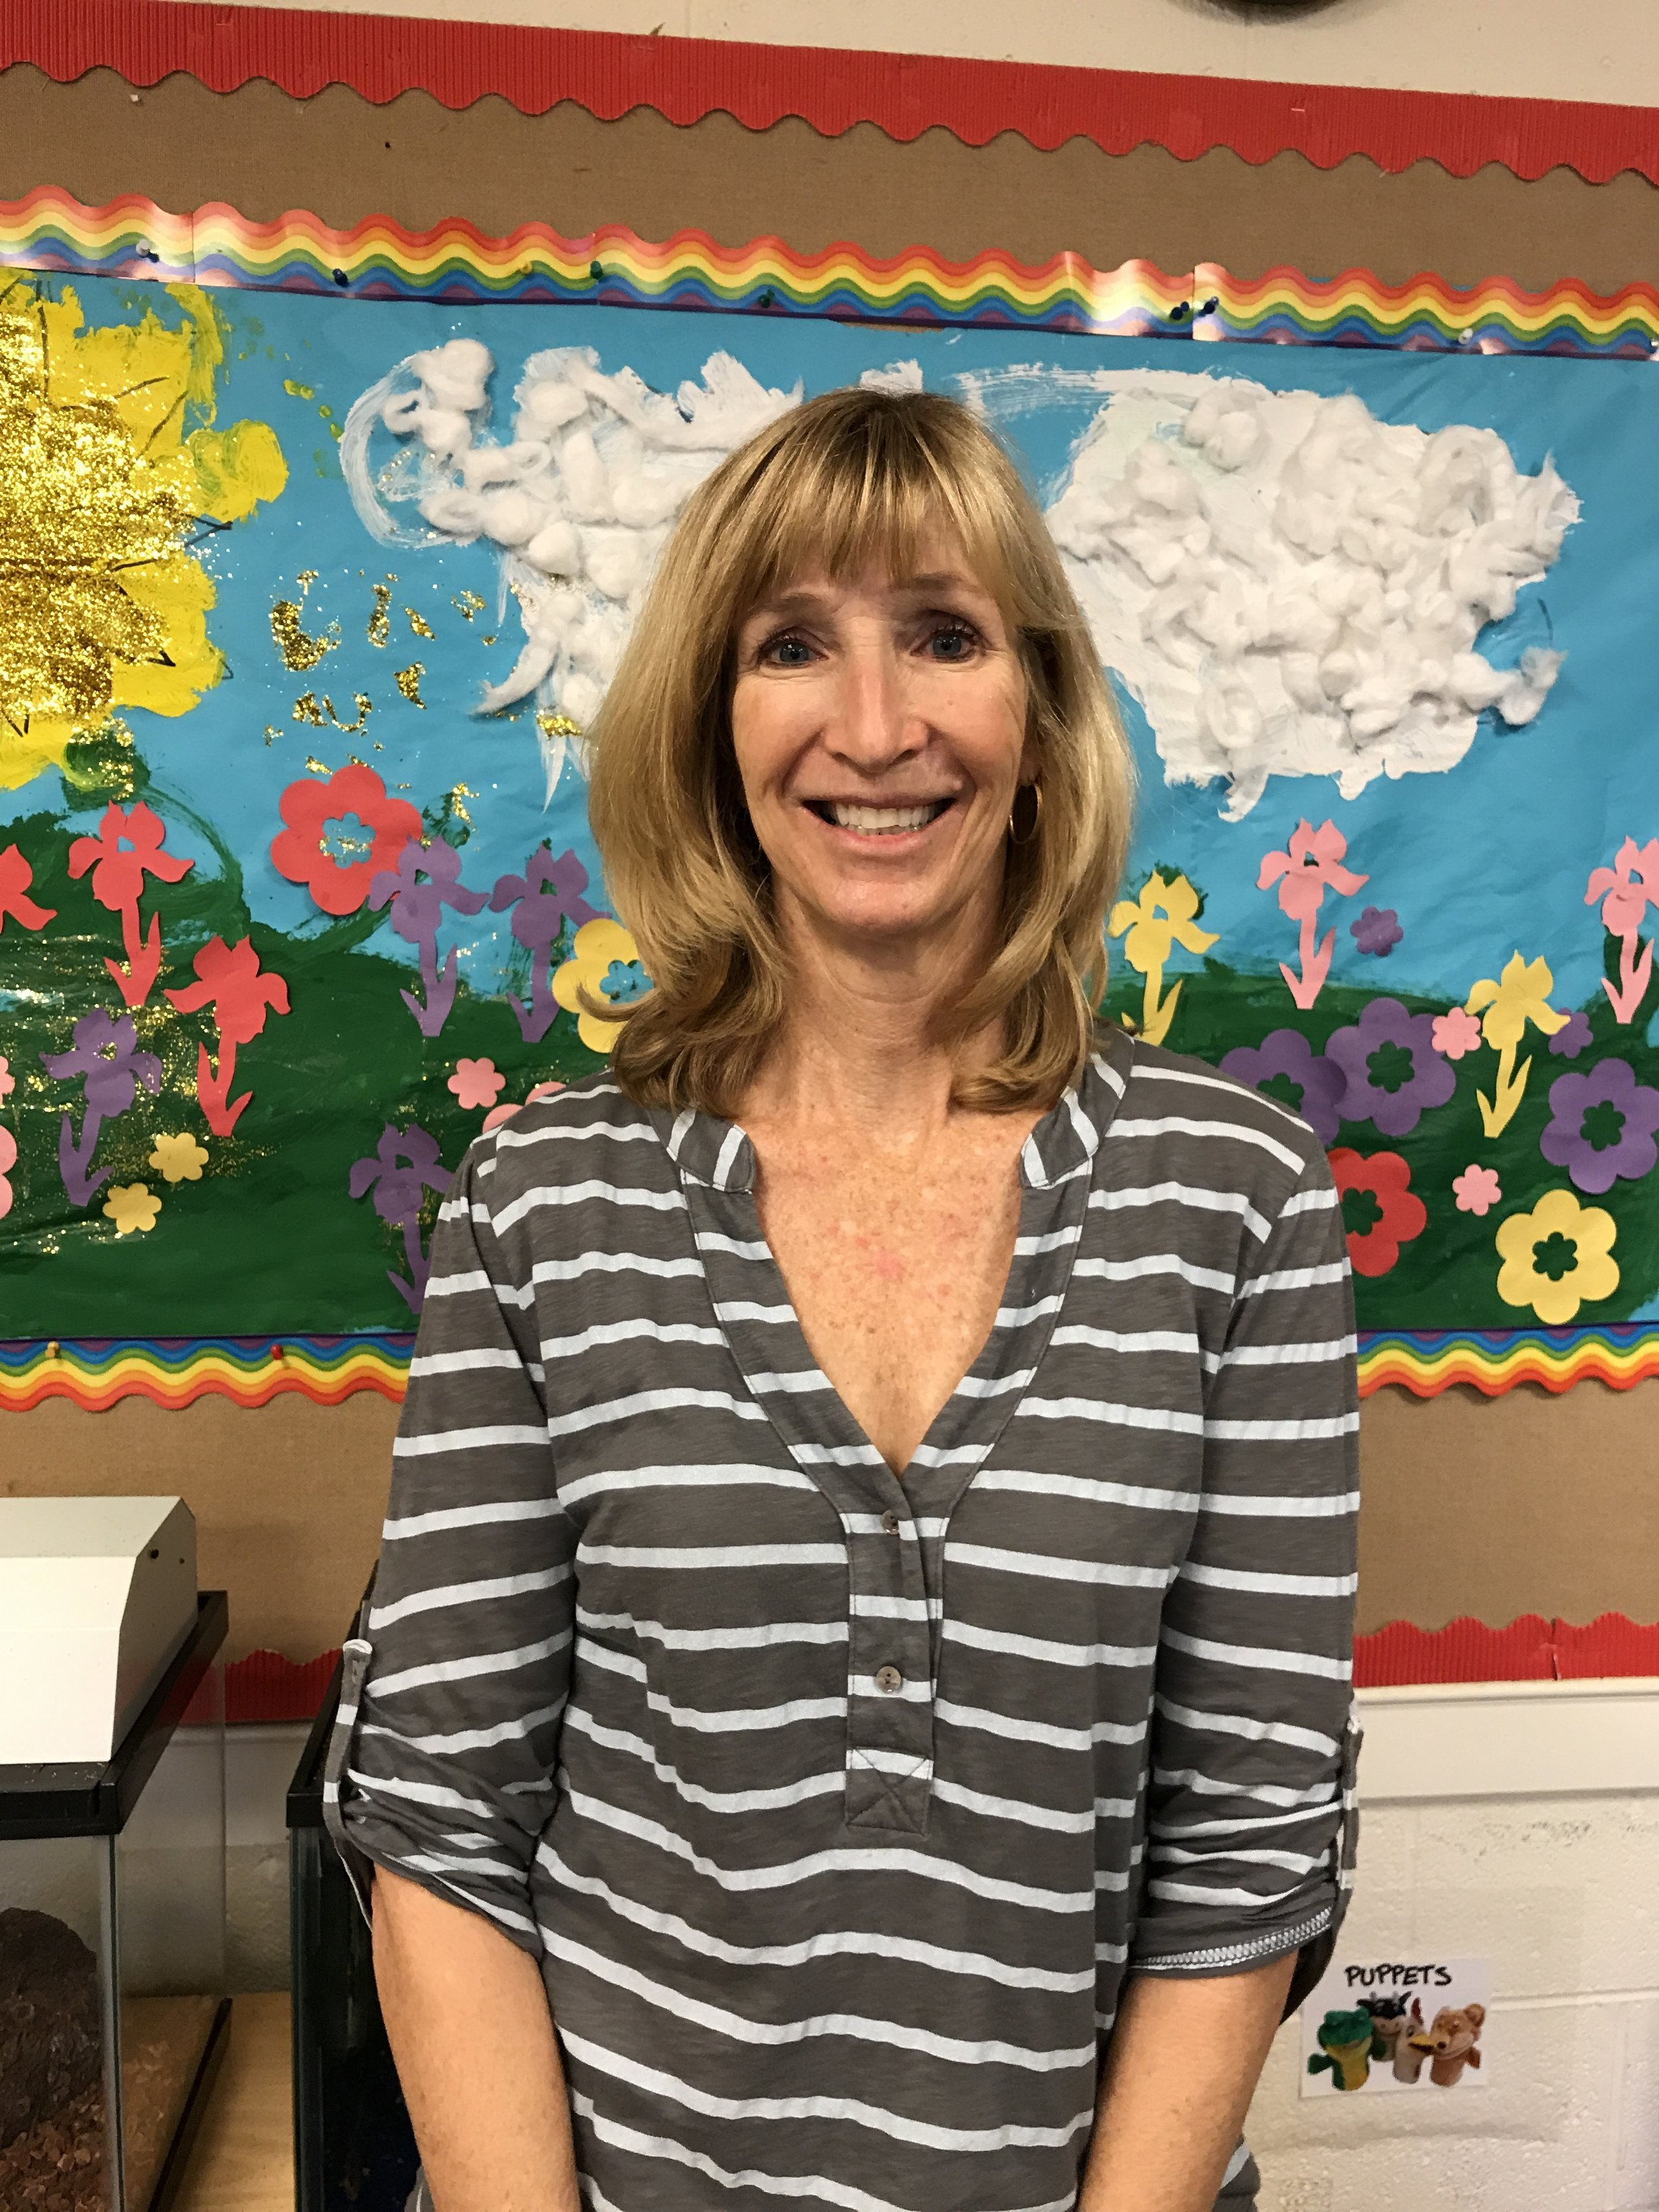 Noni Lindahl  Director of the Weekday Nursery School    Email    -   WNS